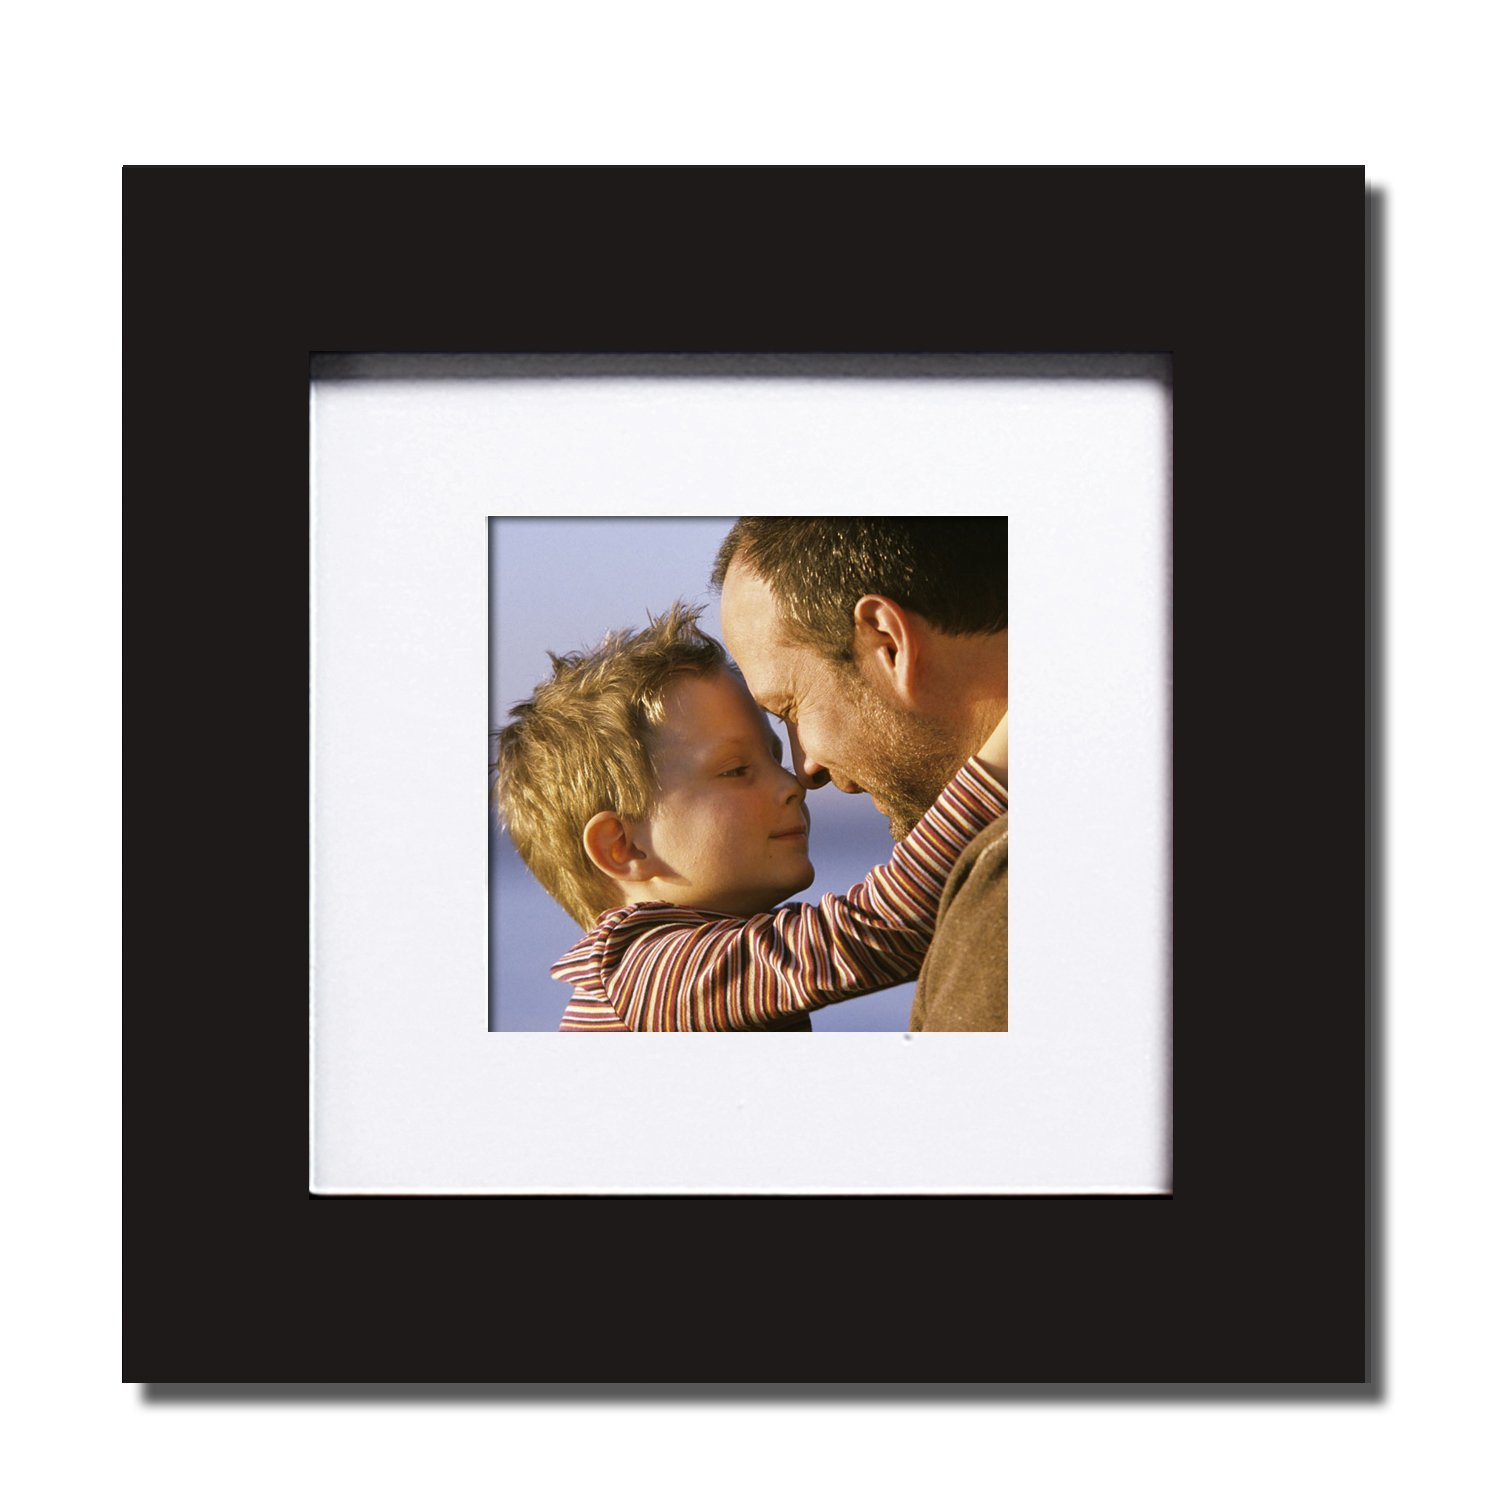 Buy adeco 5 opening black wooden standing photo picture frames adeco pf0037 4 black wood wall hanging picture photo frame with mat jeuxipadfo Images